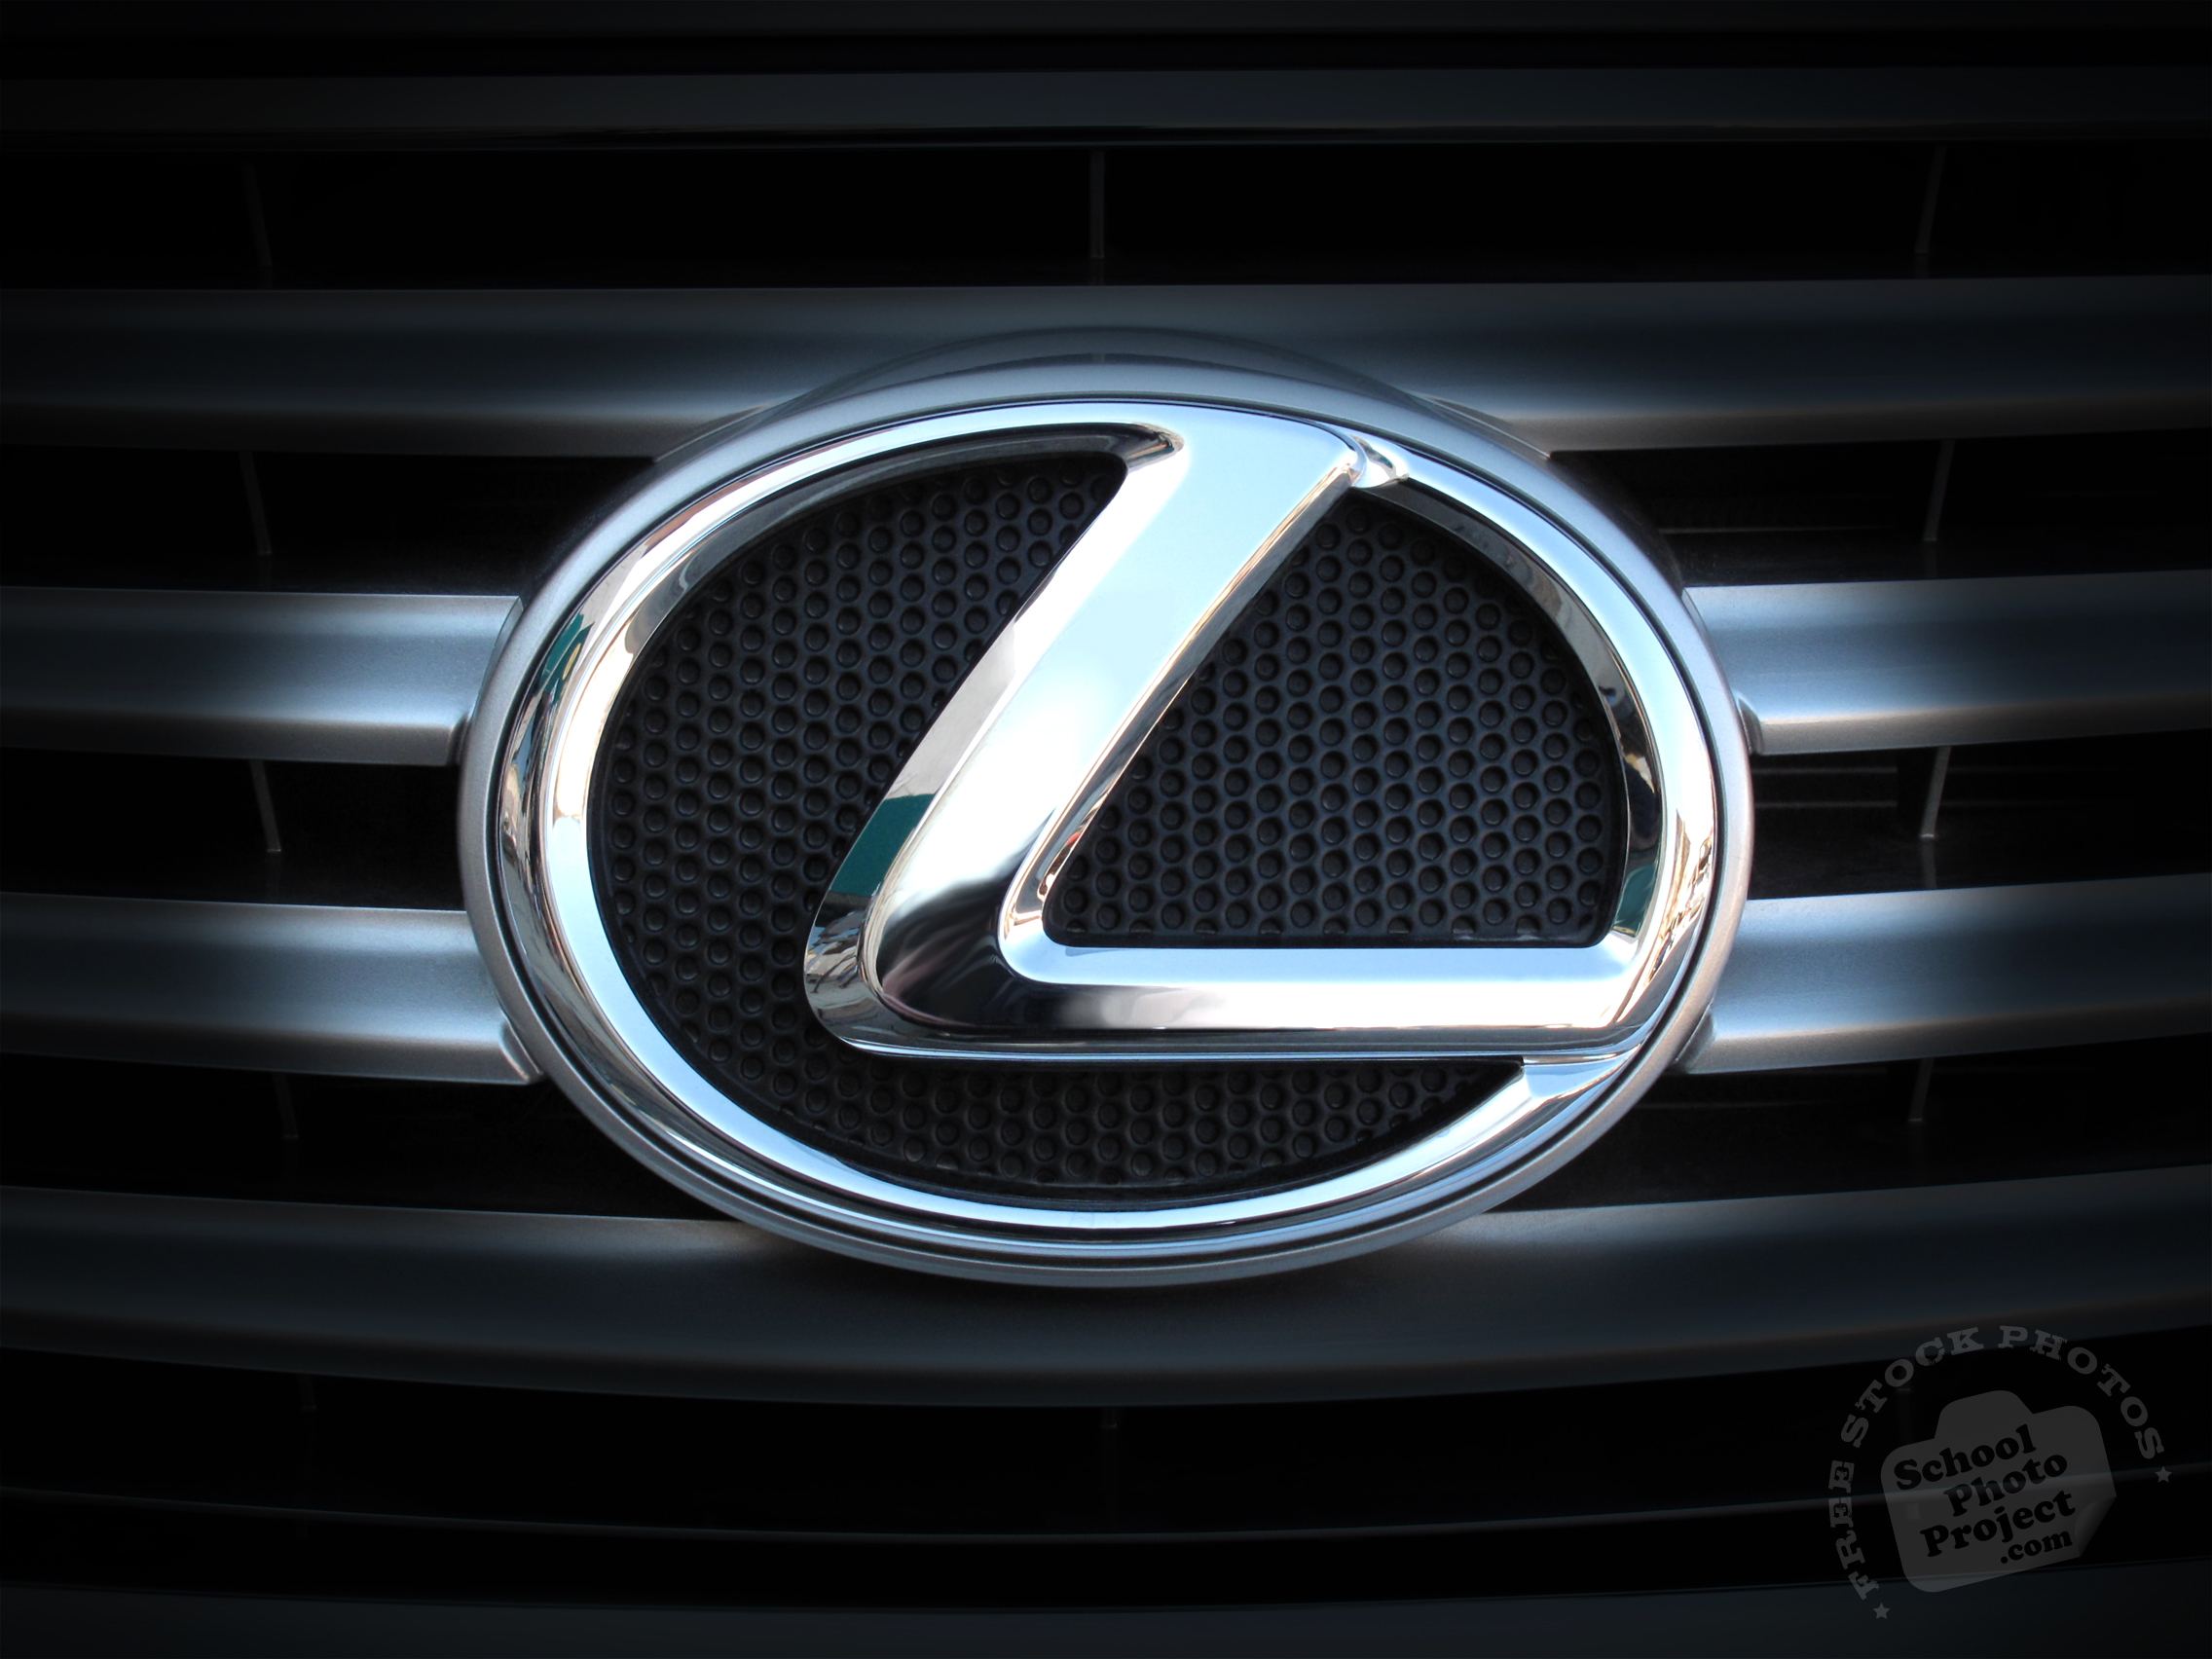 Car Brands Starting With L >> Free Lexus Logo Lexus Car Brand Famous Car Identity Royalty Free